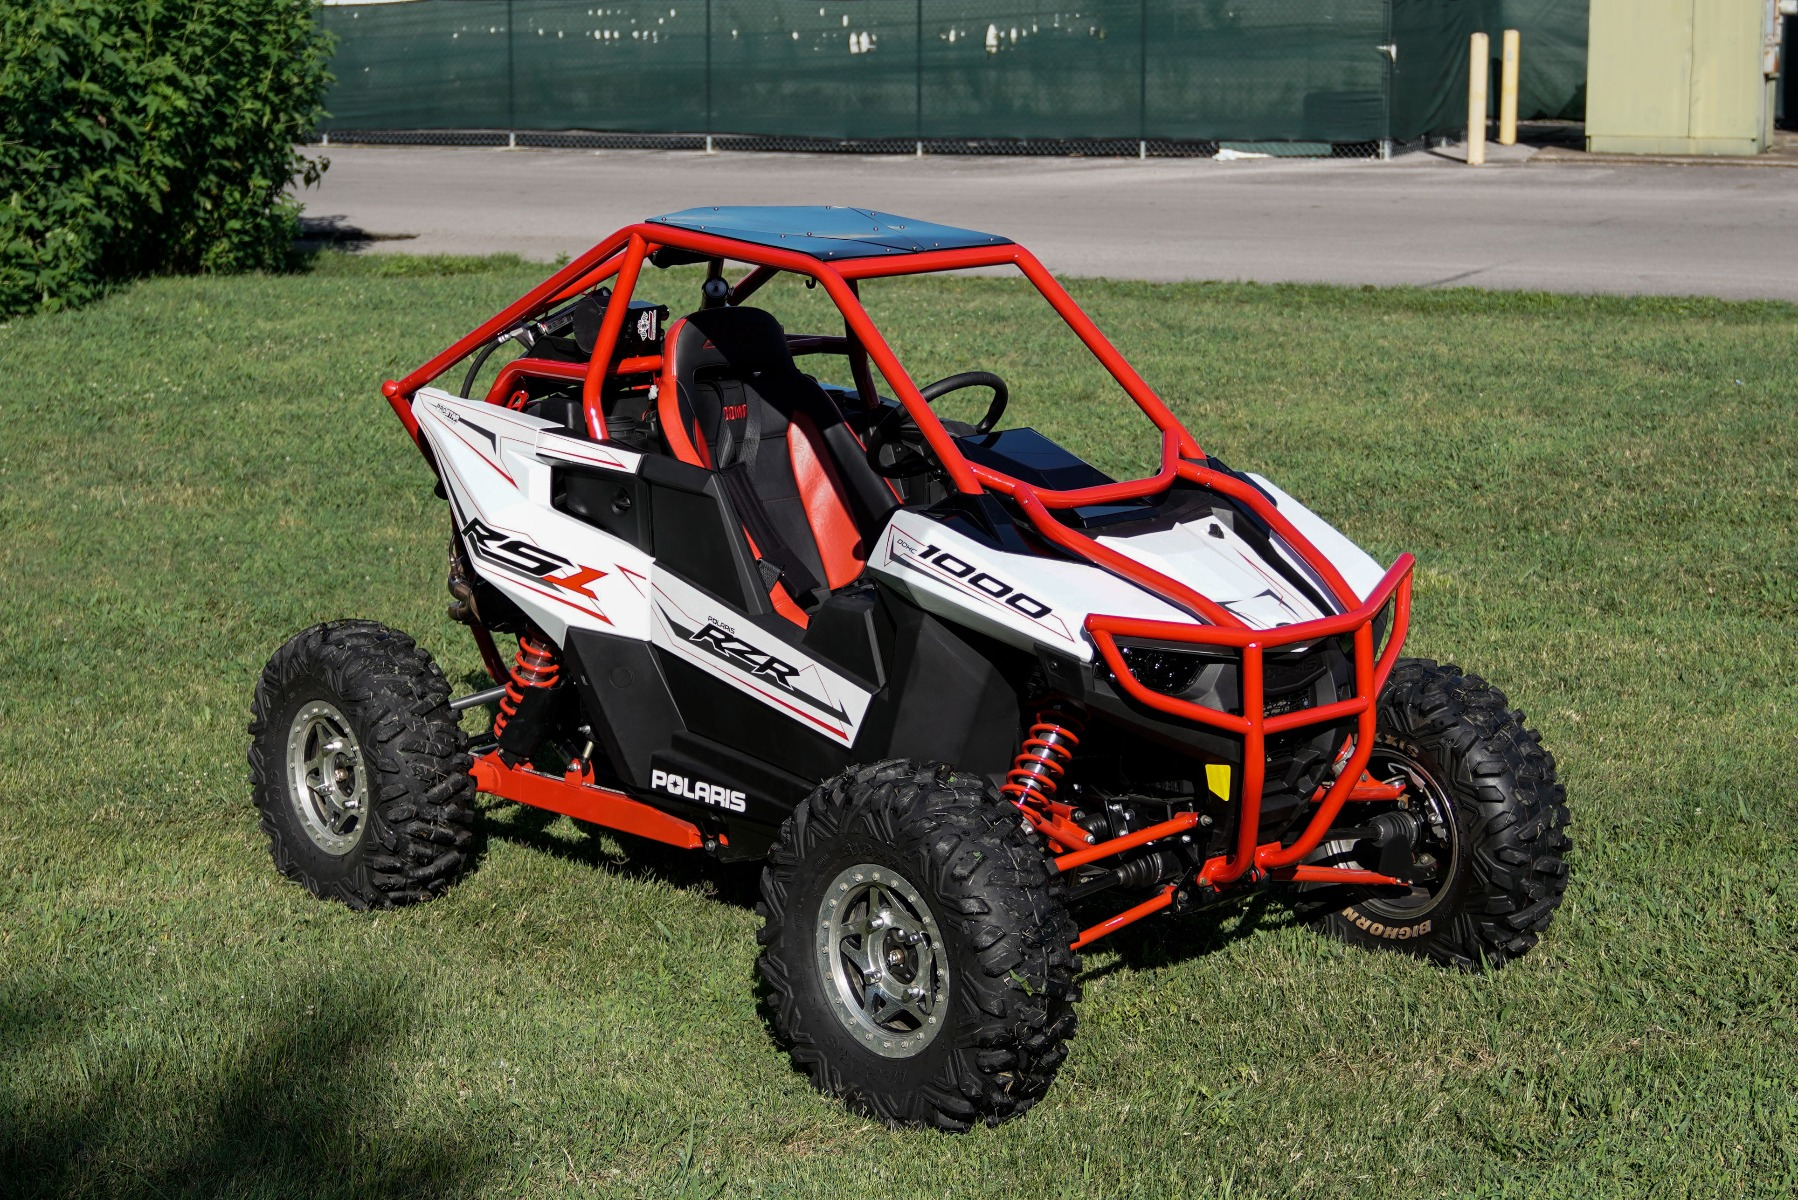 Polaris RZR RS1 Roll Cage in grass Image 10